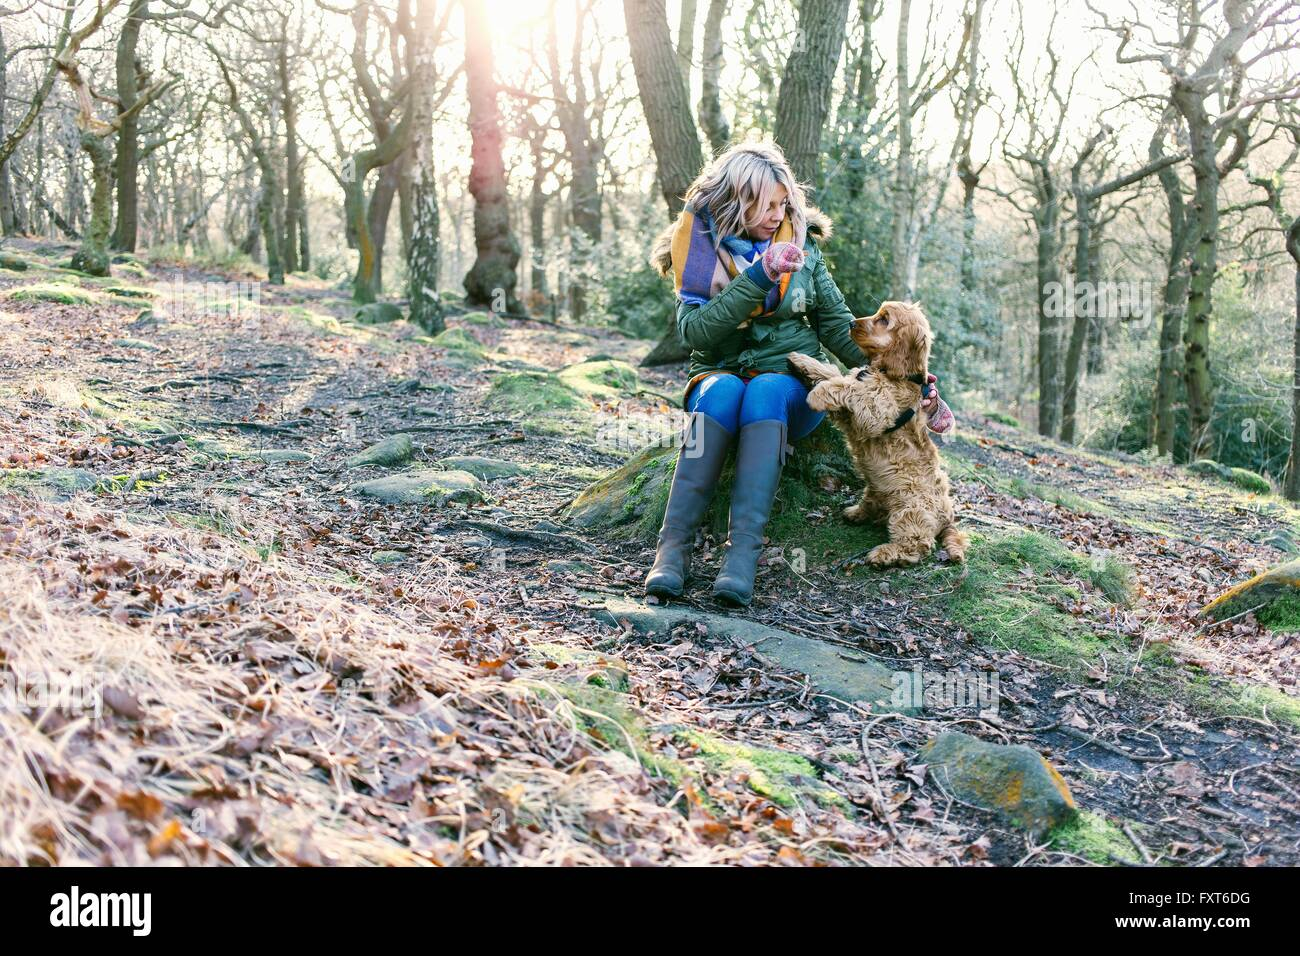 Woman giving treat to puppy in forest Stock Photo